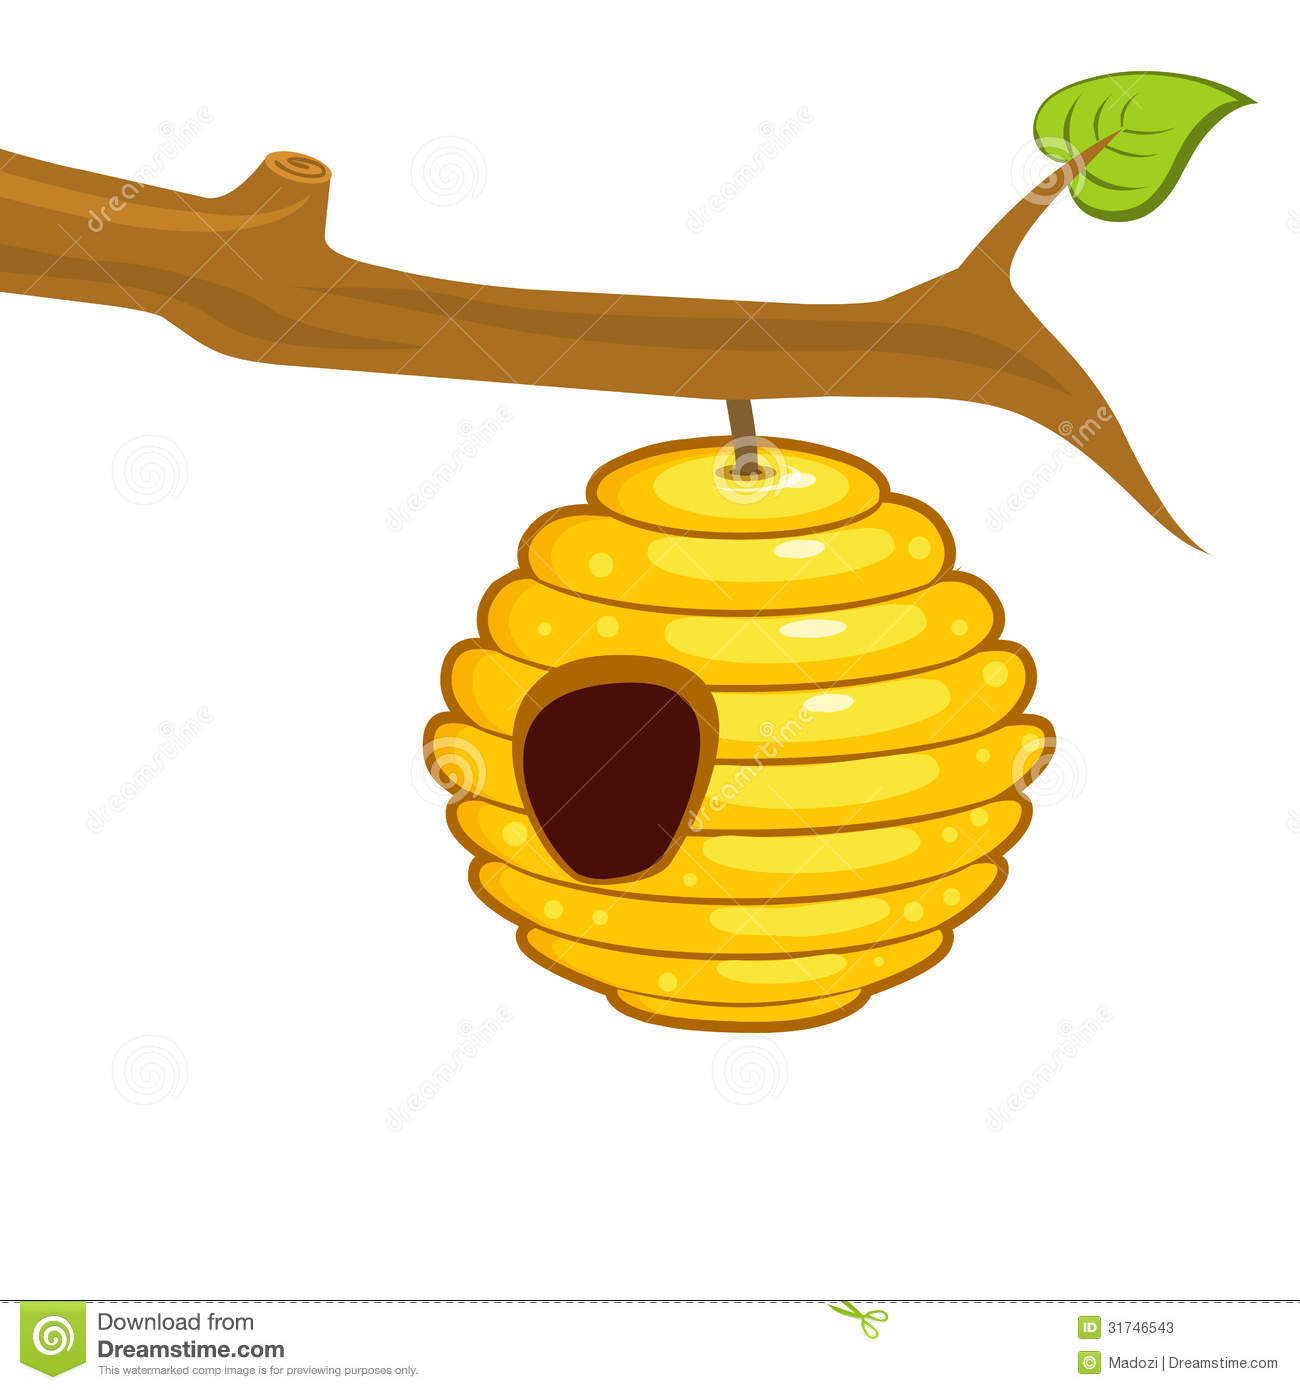 Beehive Hanging From A Branch Stock Photos - Image: 31746543